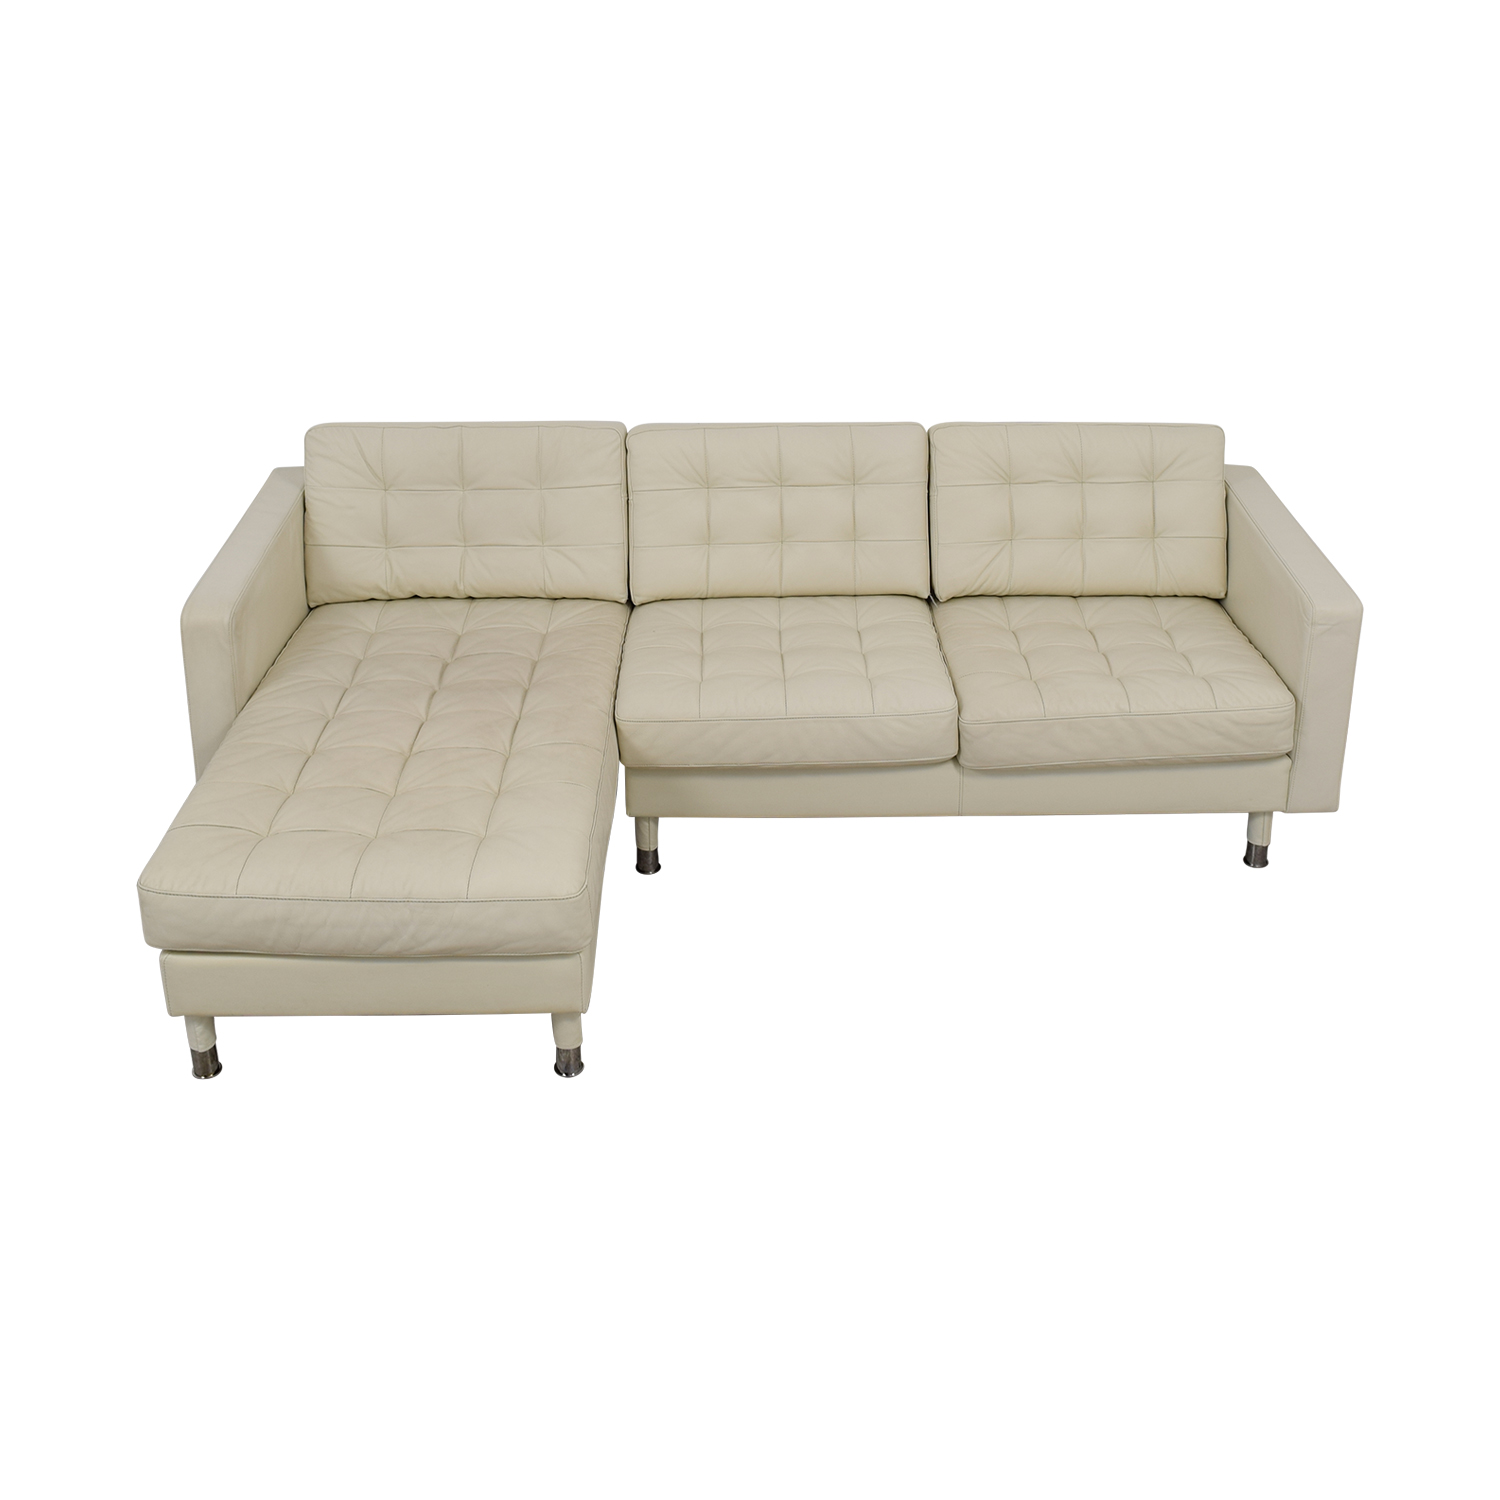 IKEA IKEA Landskrona White Tufted Chaise Sectional